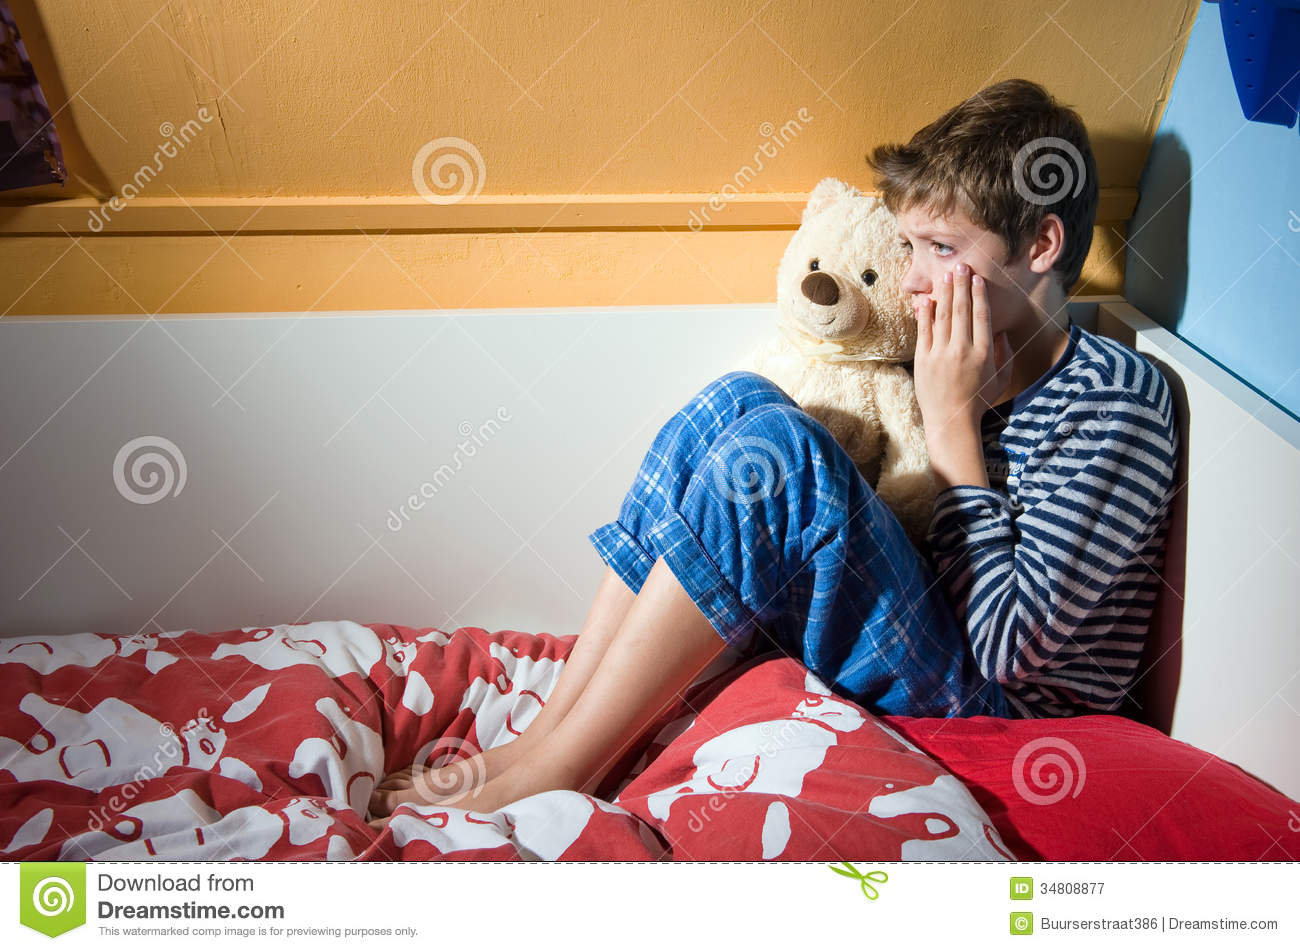 Boy Crying On His Bed Royalty Free Stock Photography - Image: 34808877